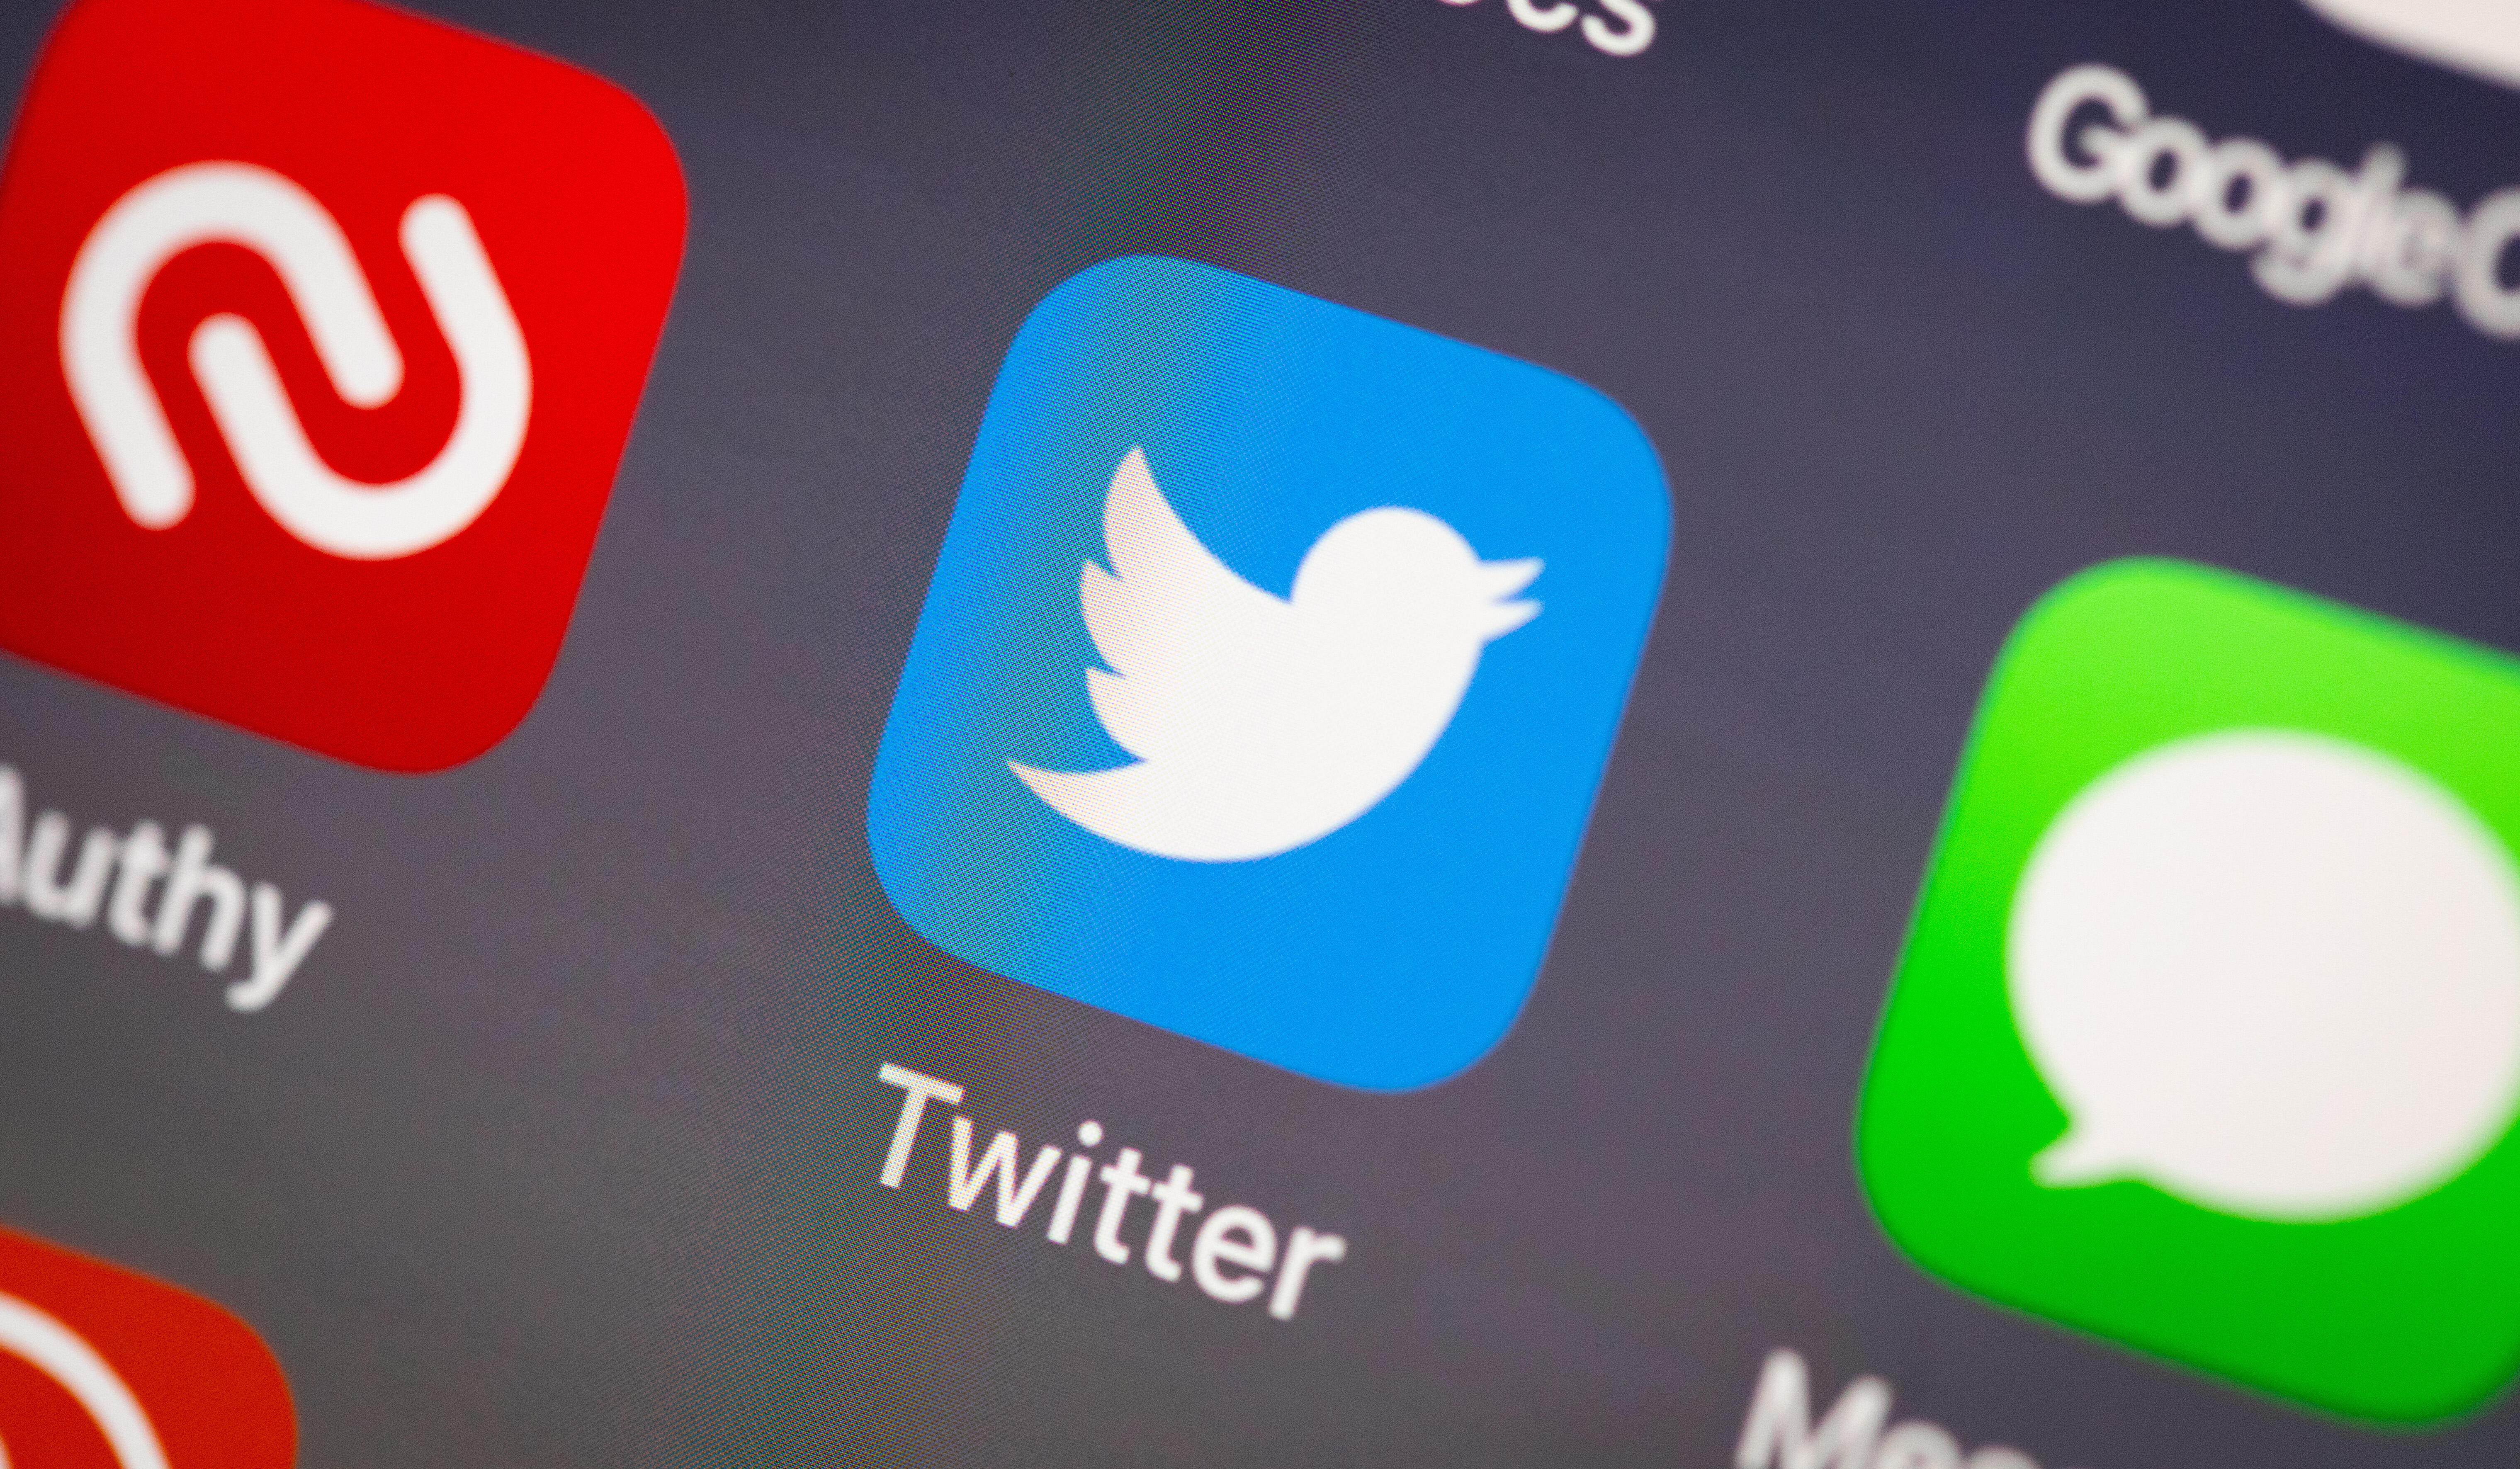 Twitter app icon and logo